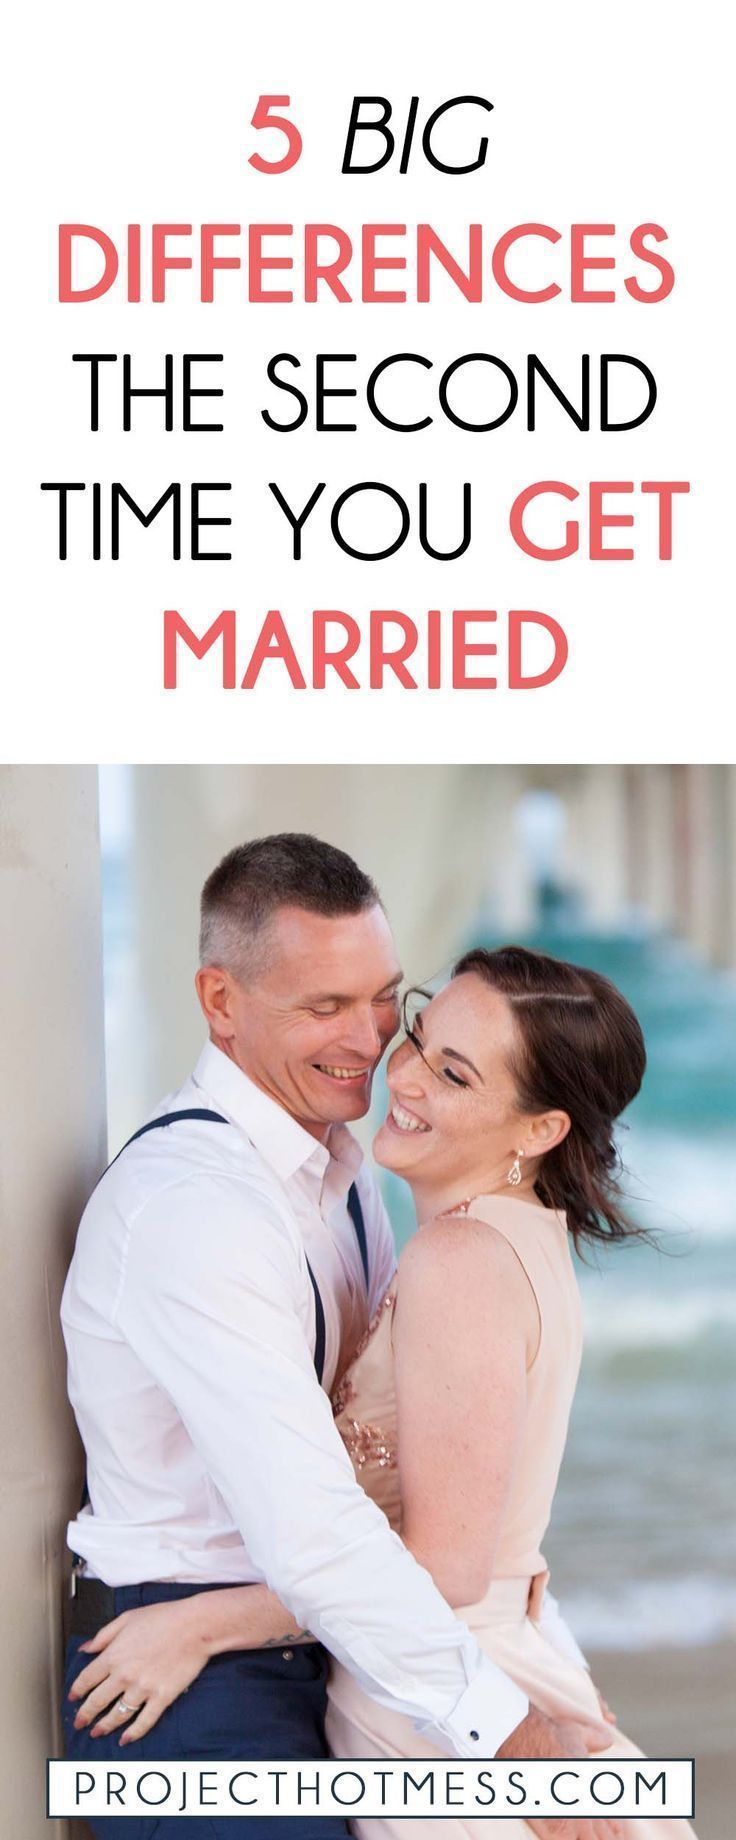 5 Big Differences The Second Time You Get Married